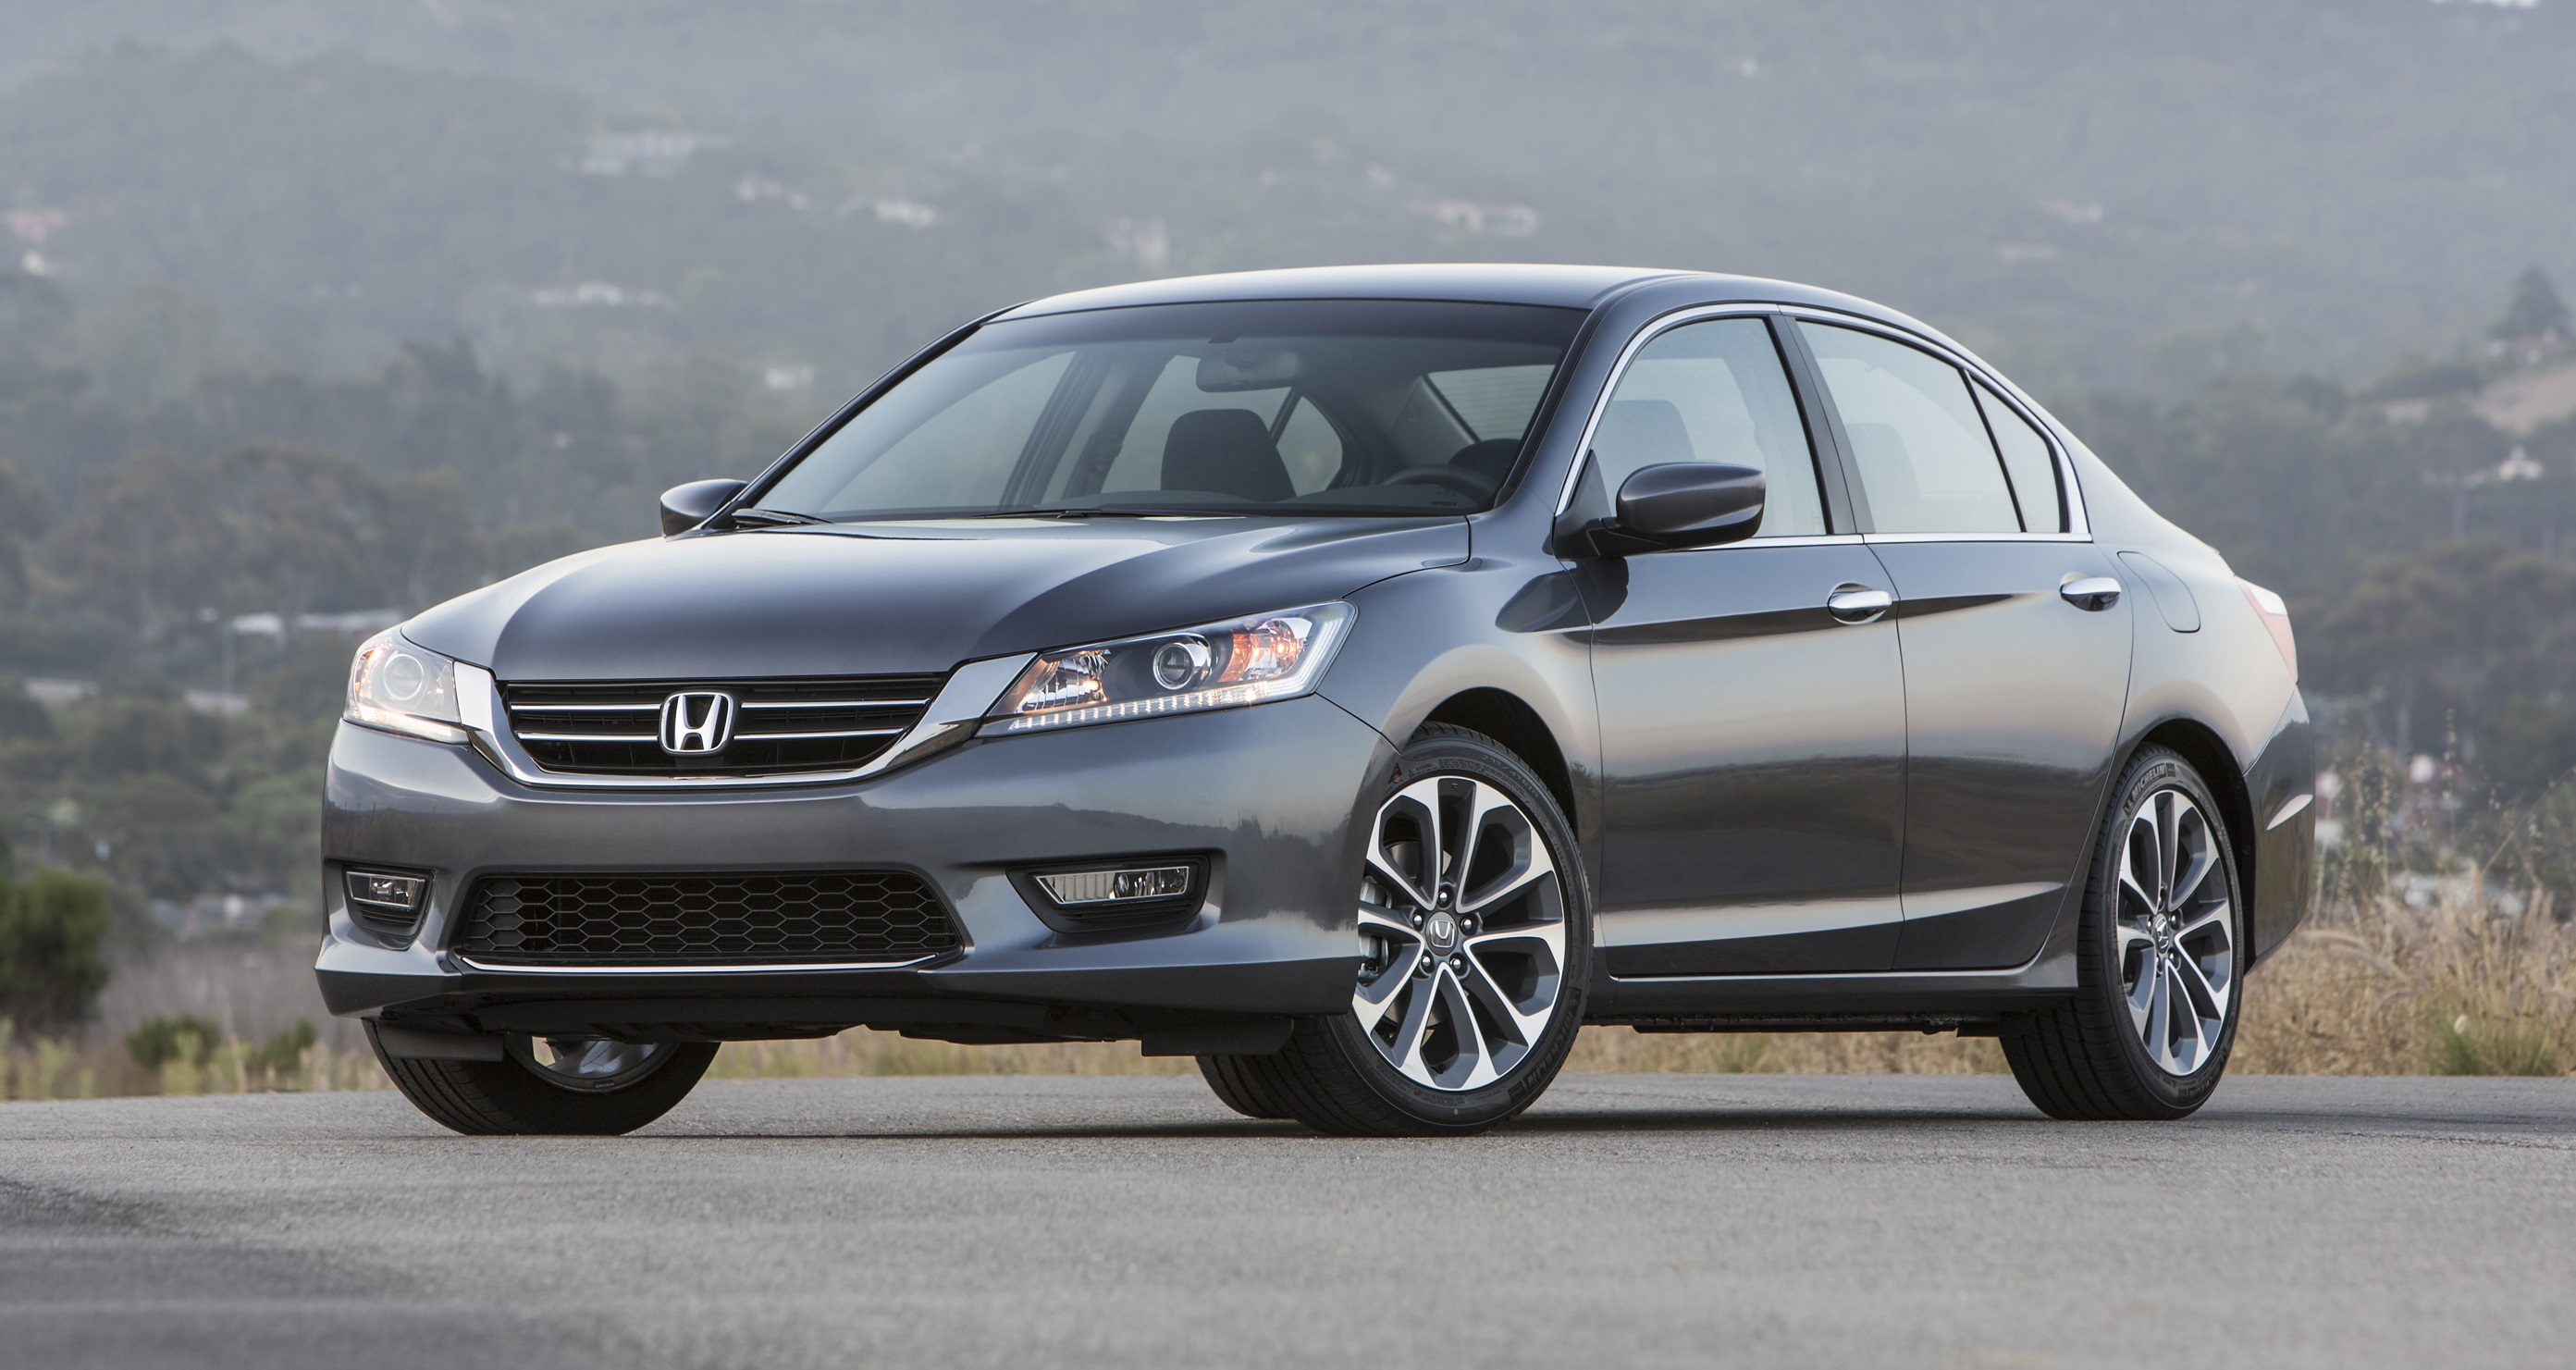 Charmant The 2013 Accord Helped Honda Make Its Mark On The CR List.